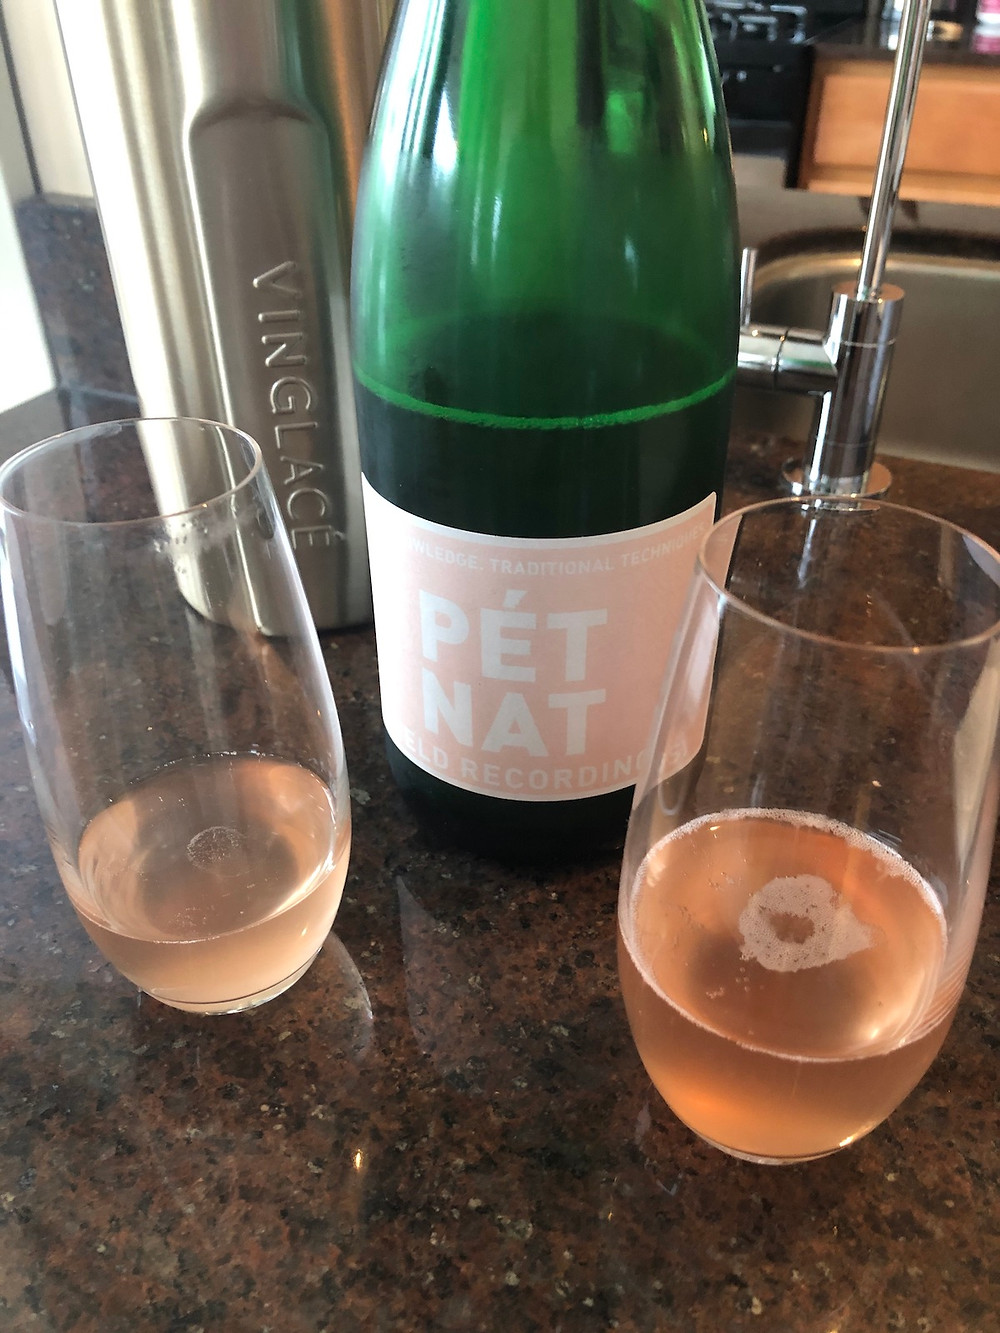 Bottle of Pet Nat Rose with 2 wine glasses.